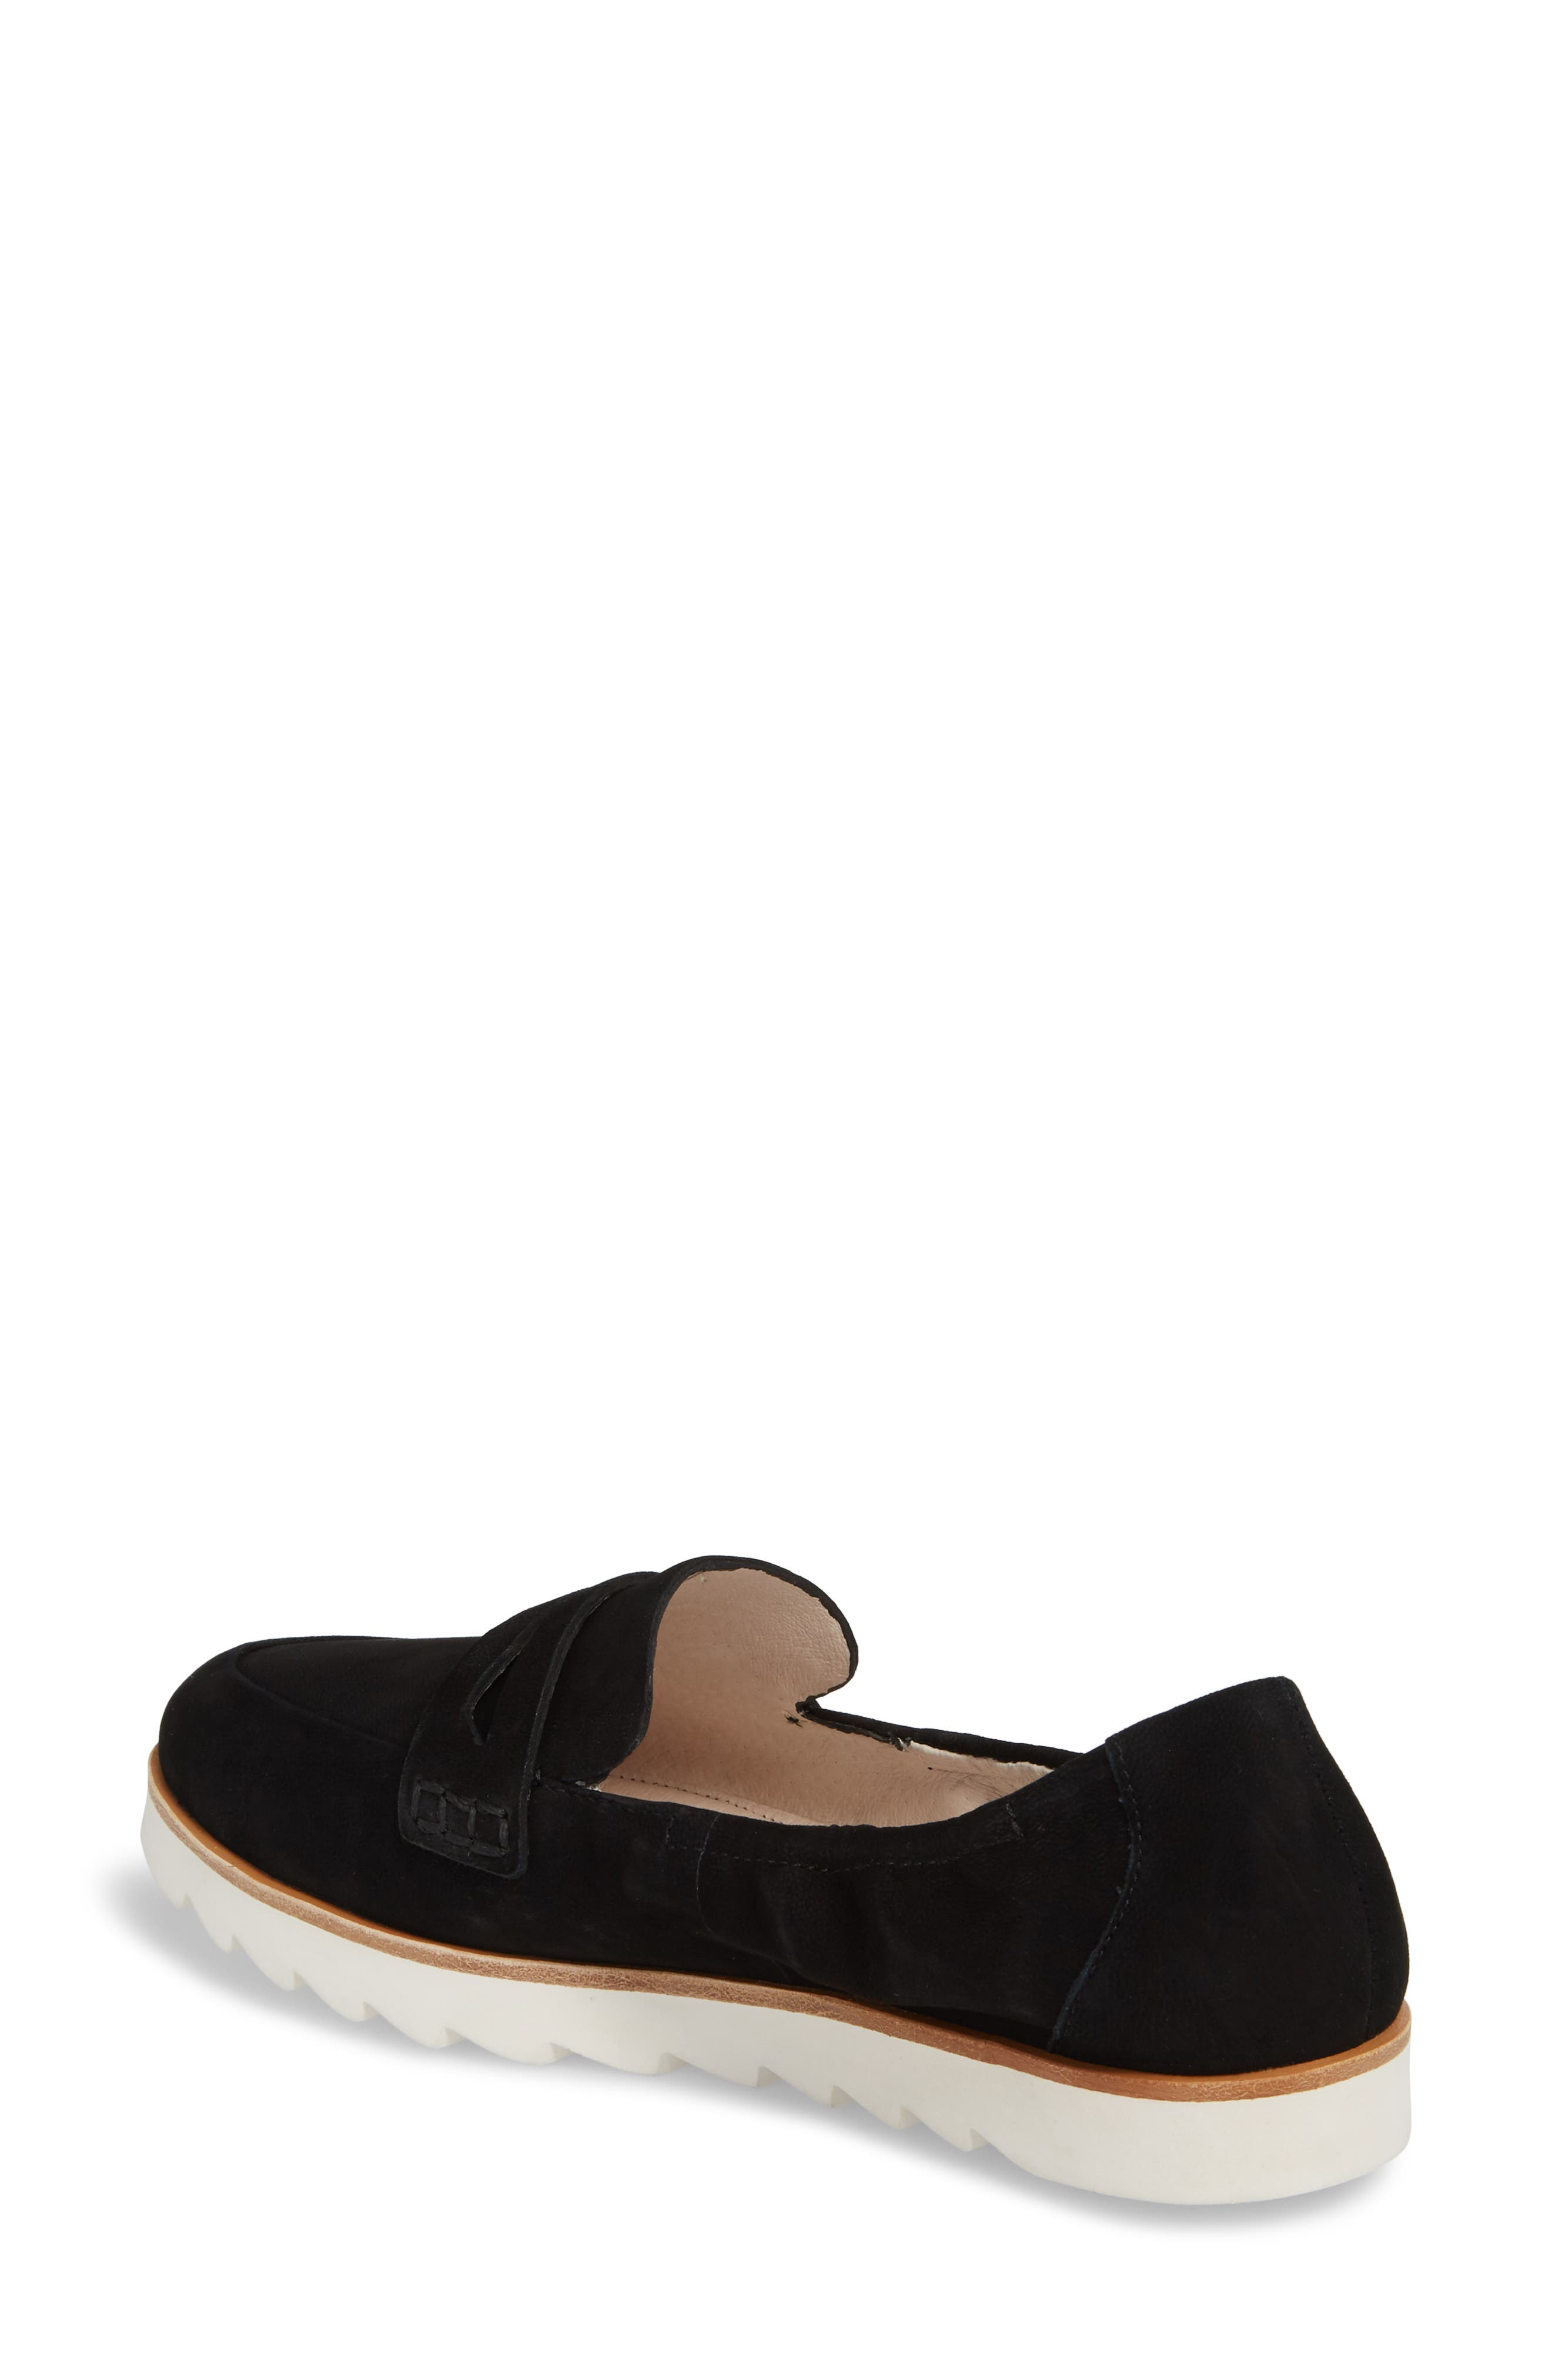 Rylee Penny Loafer,                             Alternate thumbnail 2, color,                             001